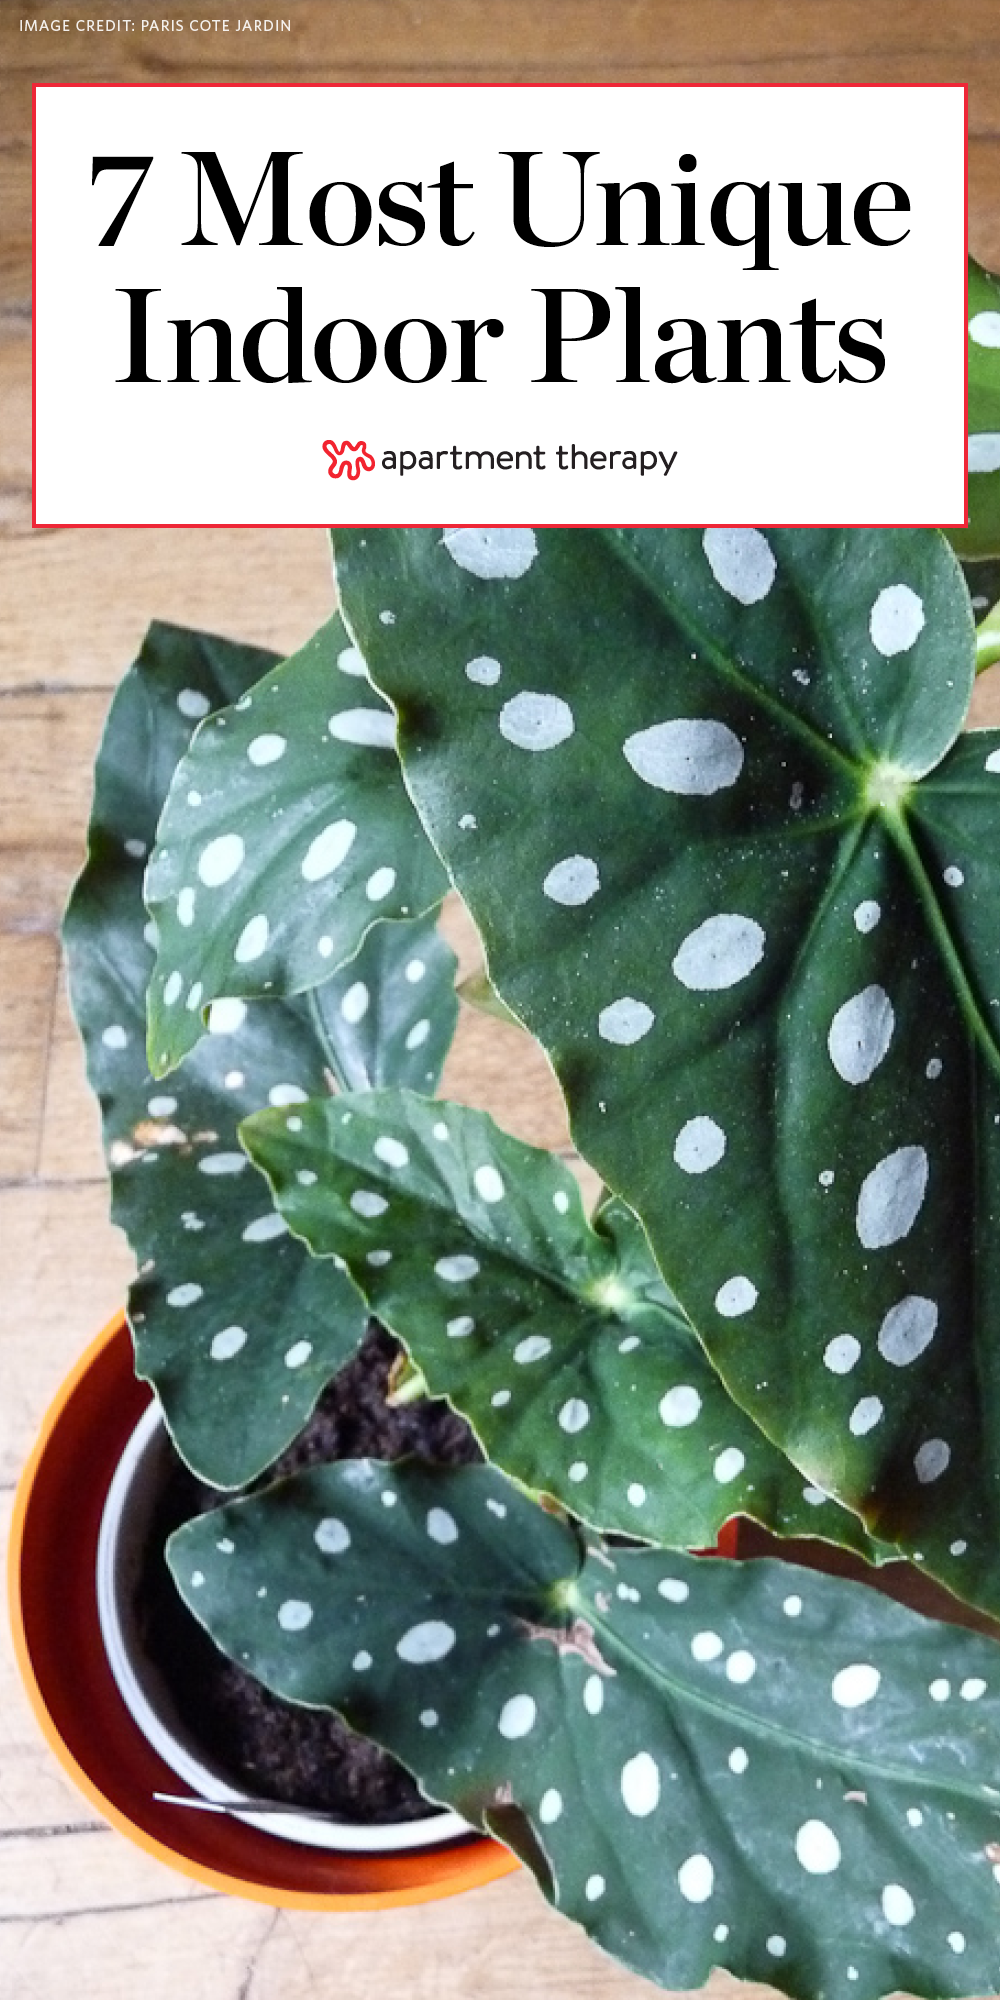 7 Houseplants With The Most Unique Leaves We Ve Ever Seen House Plants Indoor Inside Plants Plants